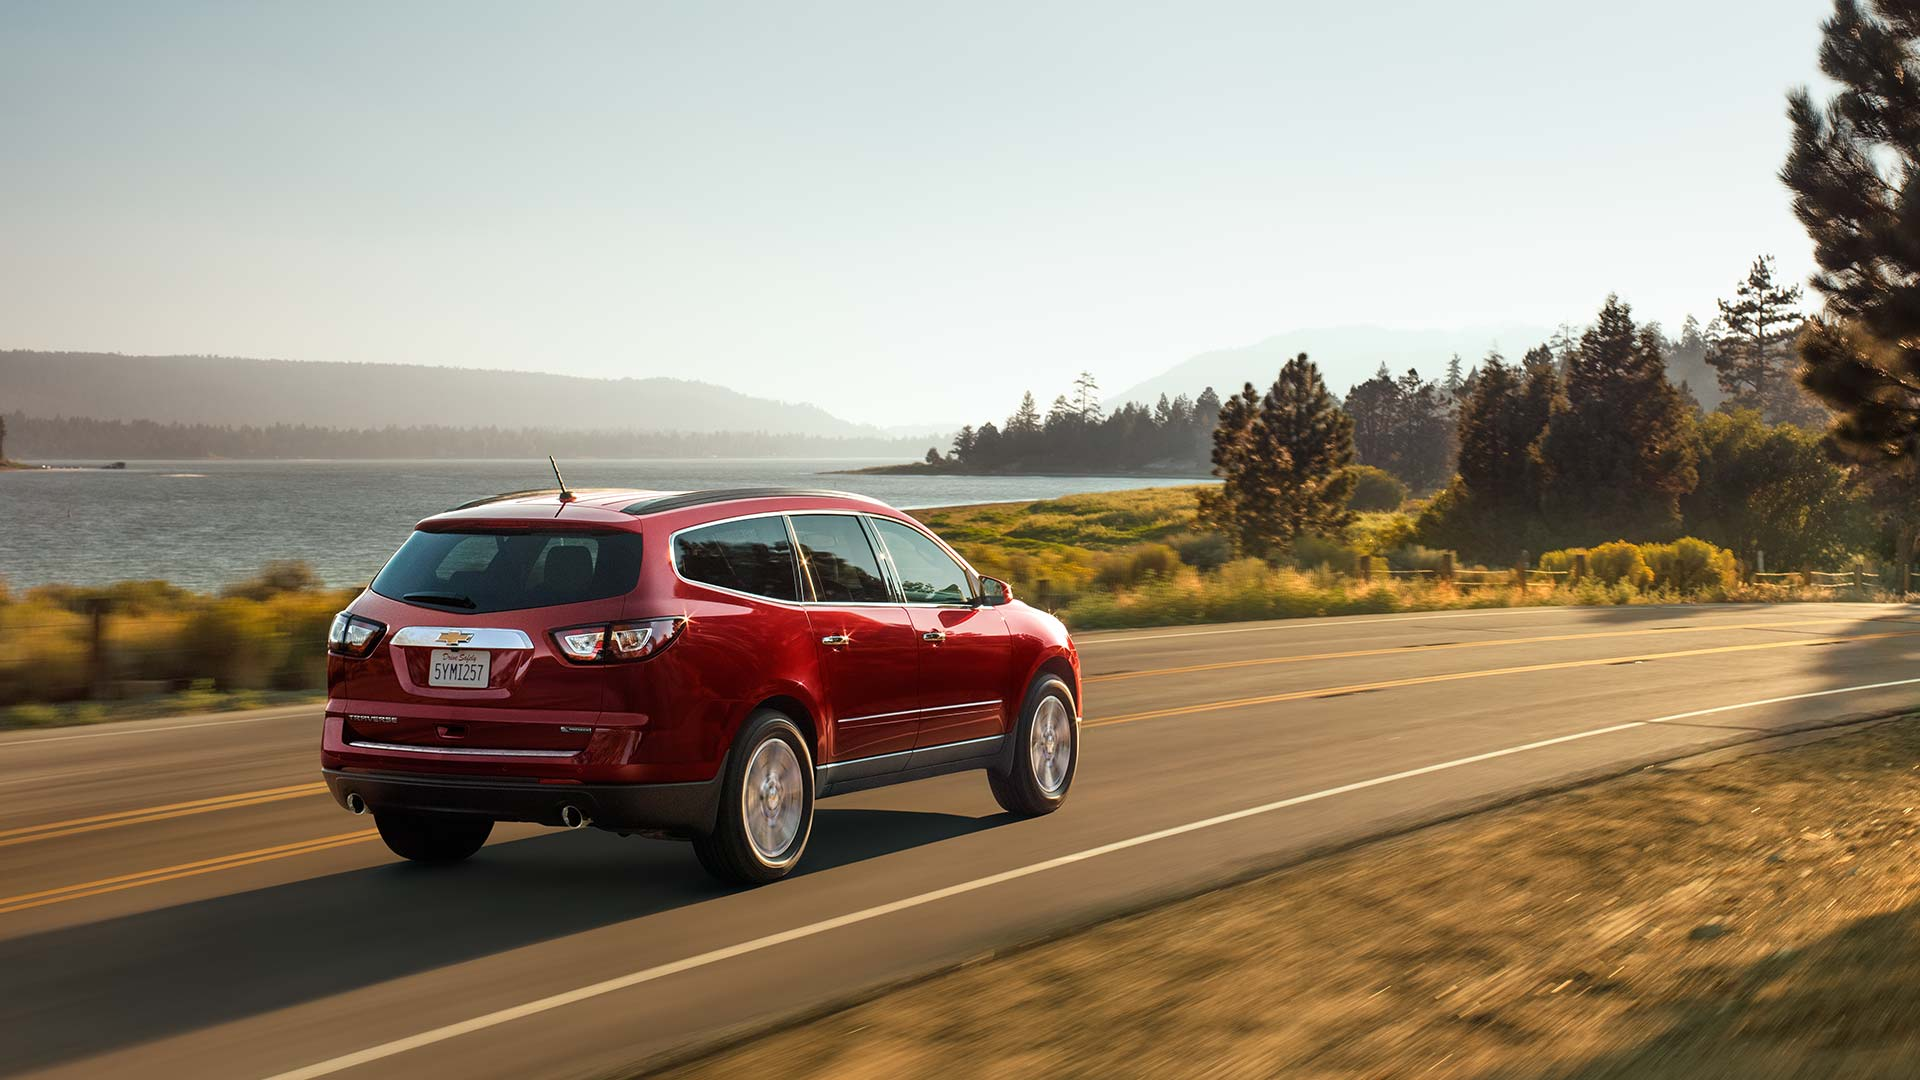 2017 chevy traverse for sale near norman ok david stanley chevy. Cars Review. Best American Auto & Cars Review